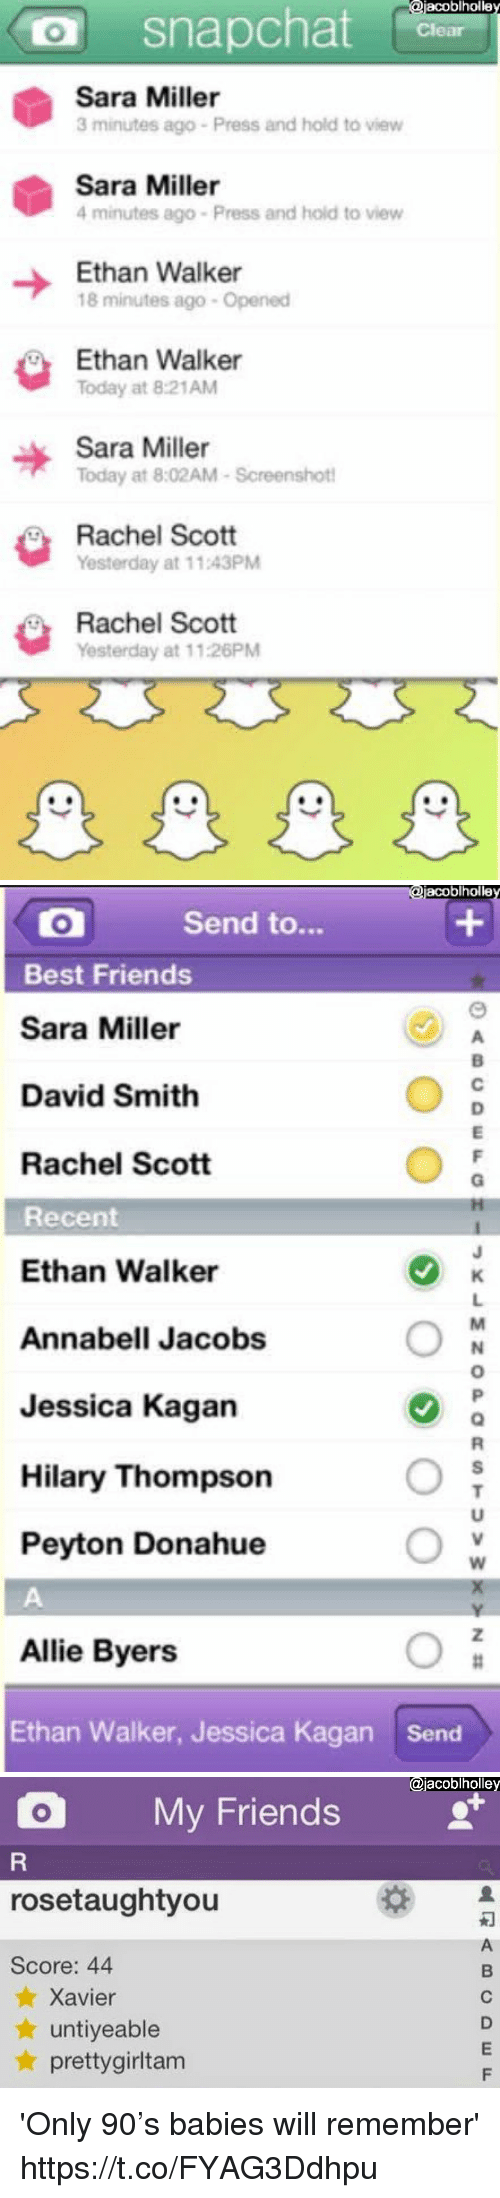 Hilary: acoblholle  O snapchat  Sara Miller  3 minutes ago Press and hold to view  Sara Miller  4 minutes ago Press and hold to view  Ethan Walker  18 minutes ago- Opened  Ethan Walke  Today at 8:21AM  Sara Miller  Today at 8:02AM-Screenshot  Rachel Scott  Yesterday at 11.43PM  Rachel Scott  Yesterday at 11:26PM   acoblholle  Send to...  Best Friends  Sara Miller  David Smith  Rachel Scott  Recent  Ethan Walker  Annabell Jacobs  Jessica Kagan  Hilary Thompson  Peyton Donahue  Allie Byers  Ethan Walker, Jessica Kagan  Send   @jacoblholle  O My Friends  rosetaughtyou  Score: 44  ★ Xavier  ★ untiyeable  ★ prettygirltam 'Only 90's babies will remember' https://t.co/FYAG3Ddhpu